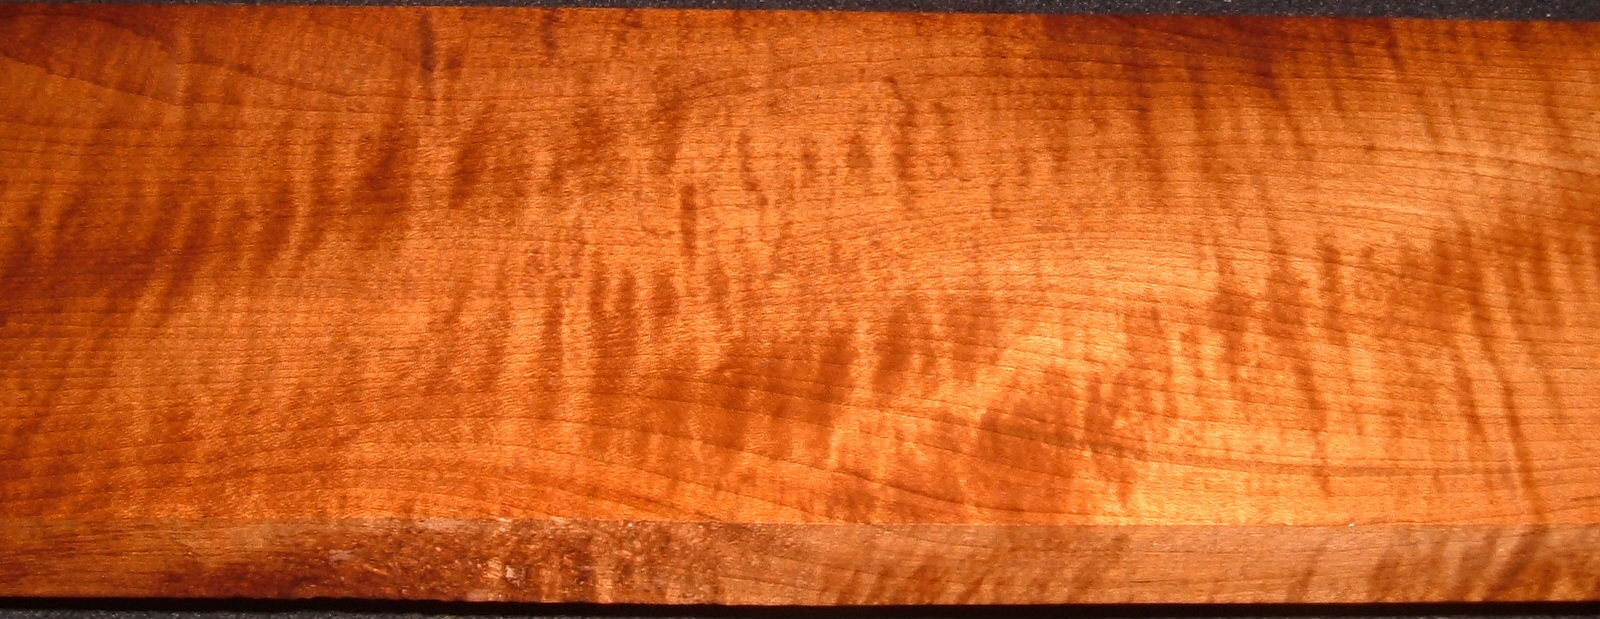 RHM2010-332,1x5-1/2x42, Roasted Torrefied Curly, Tiger Maple, Roasted Hard Maple